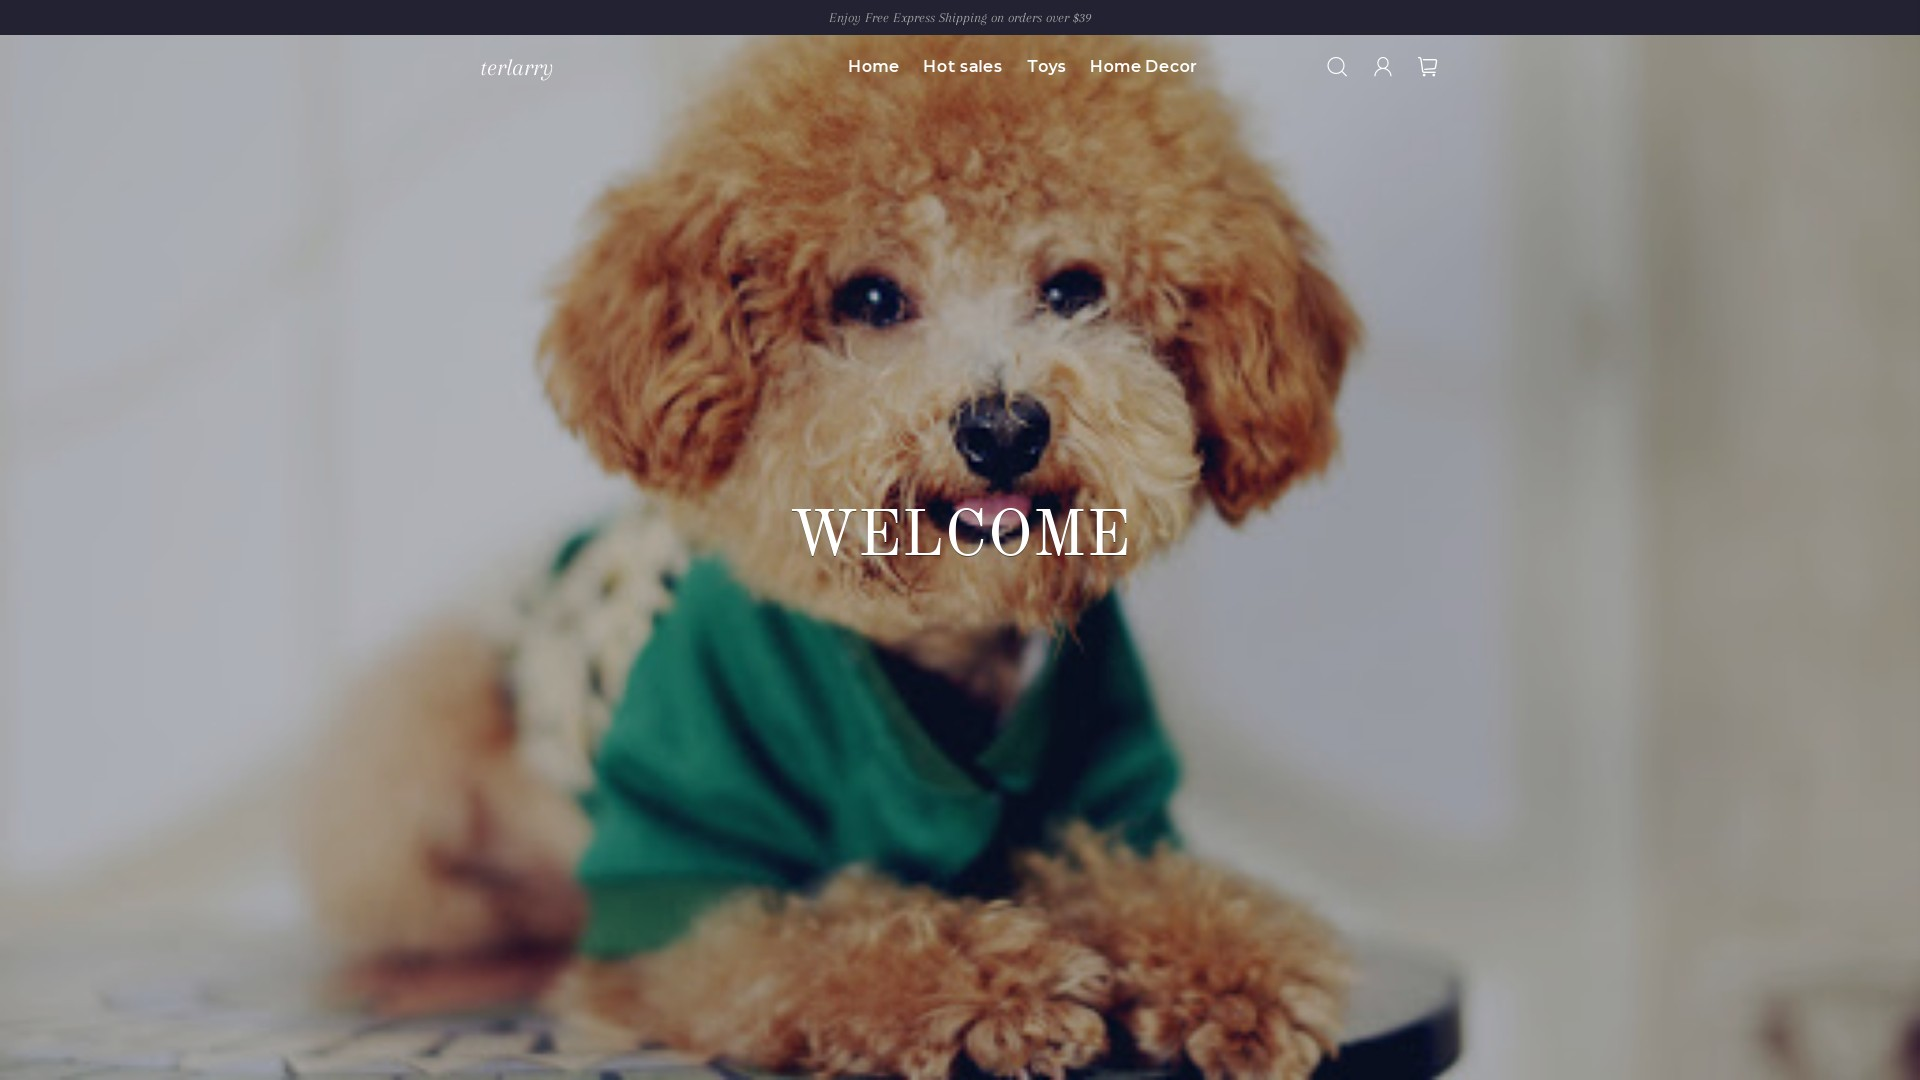 Is Terlarry Realistic Dog a Scam? Review of Online Store